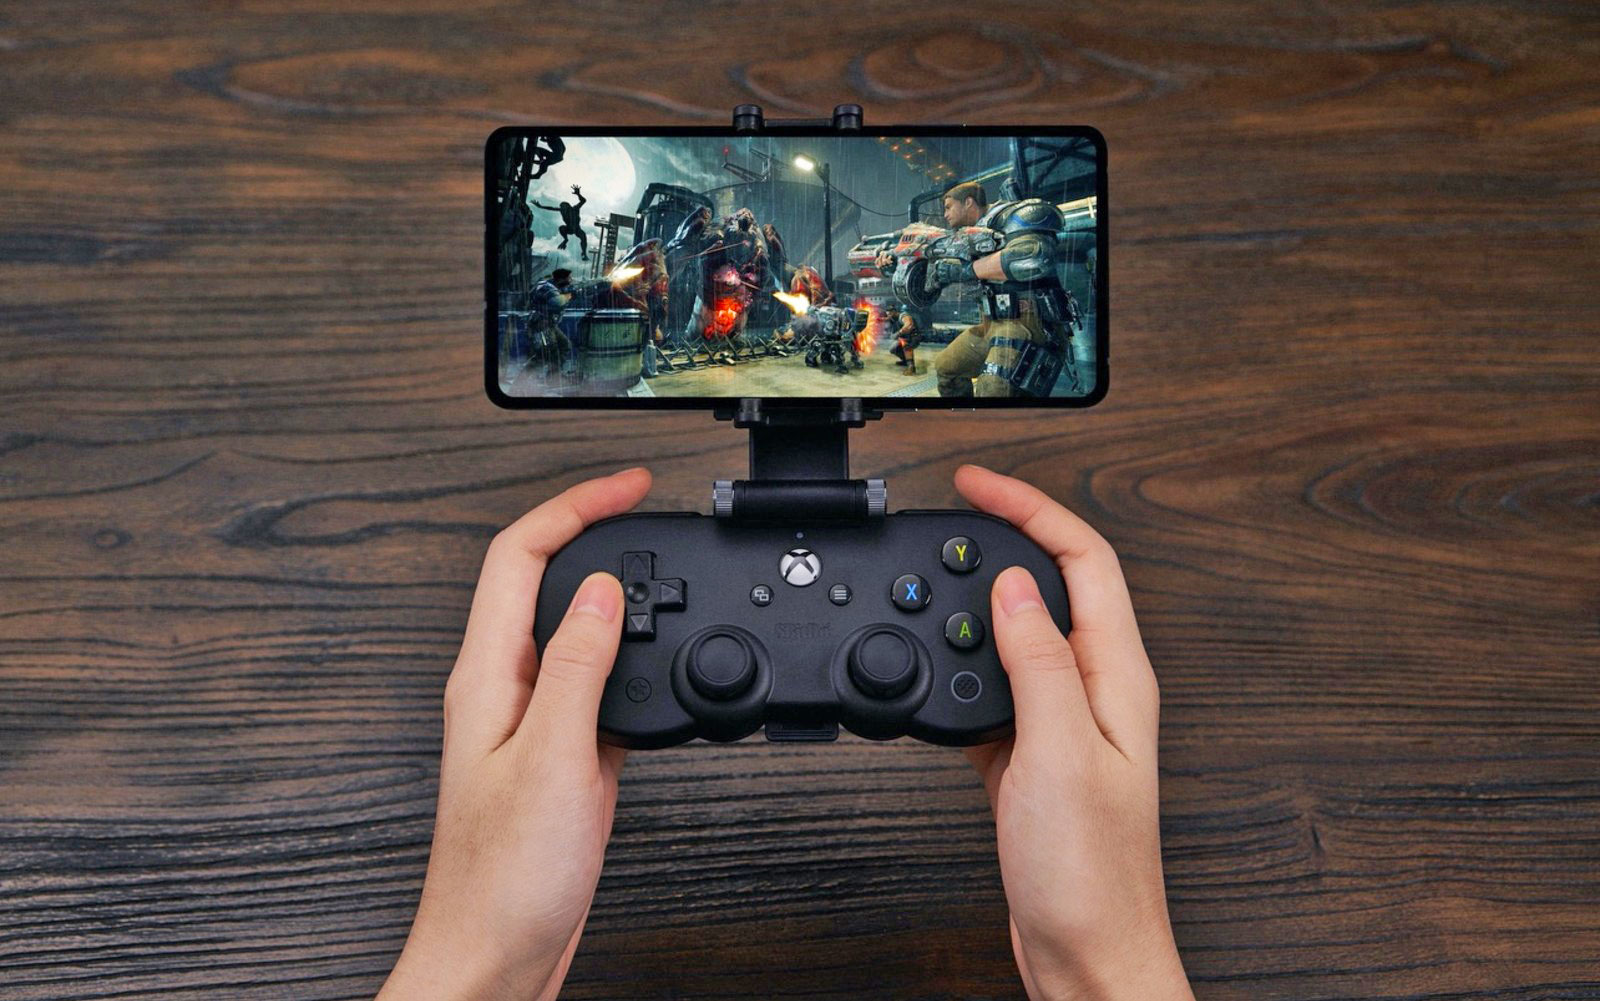 8BitDo is updating one of its Bluetooth gamepads for Project xCloud